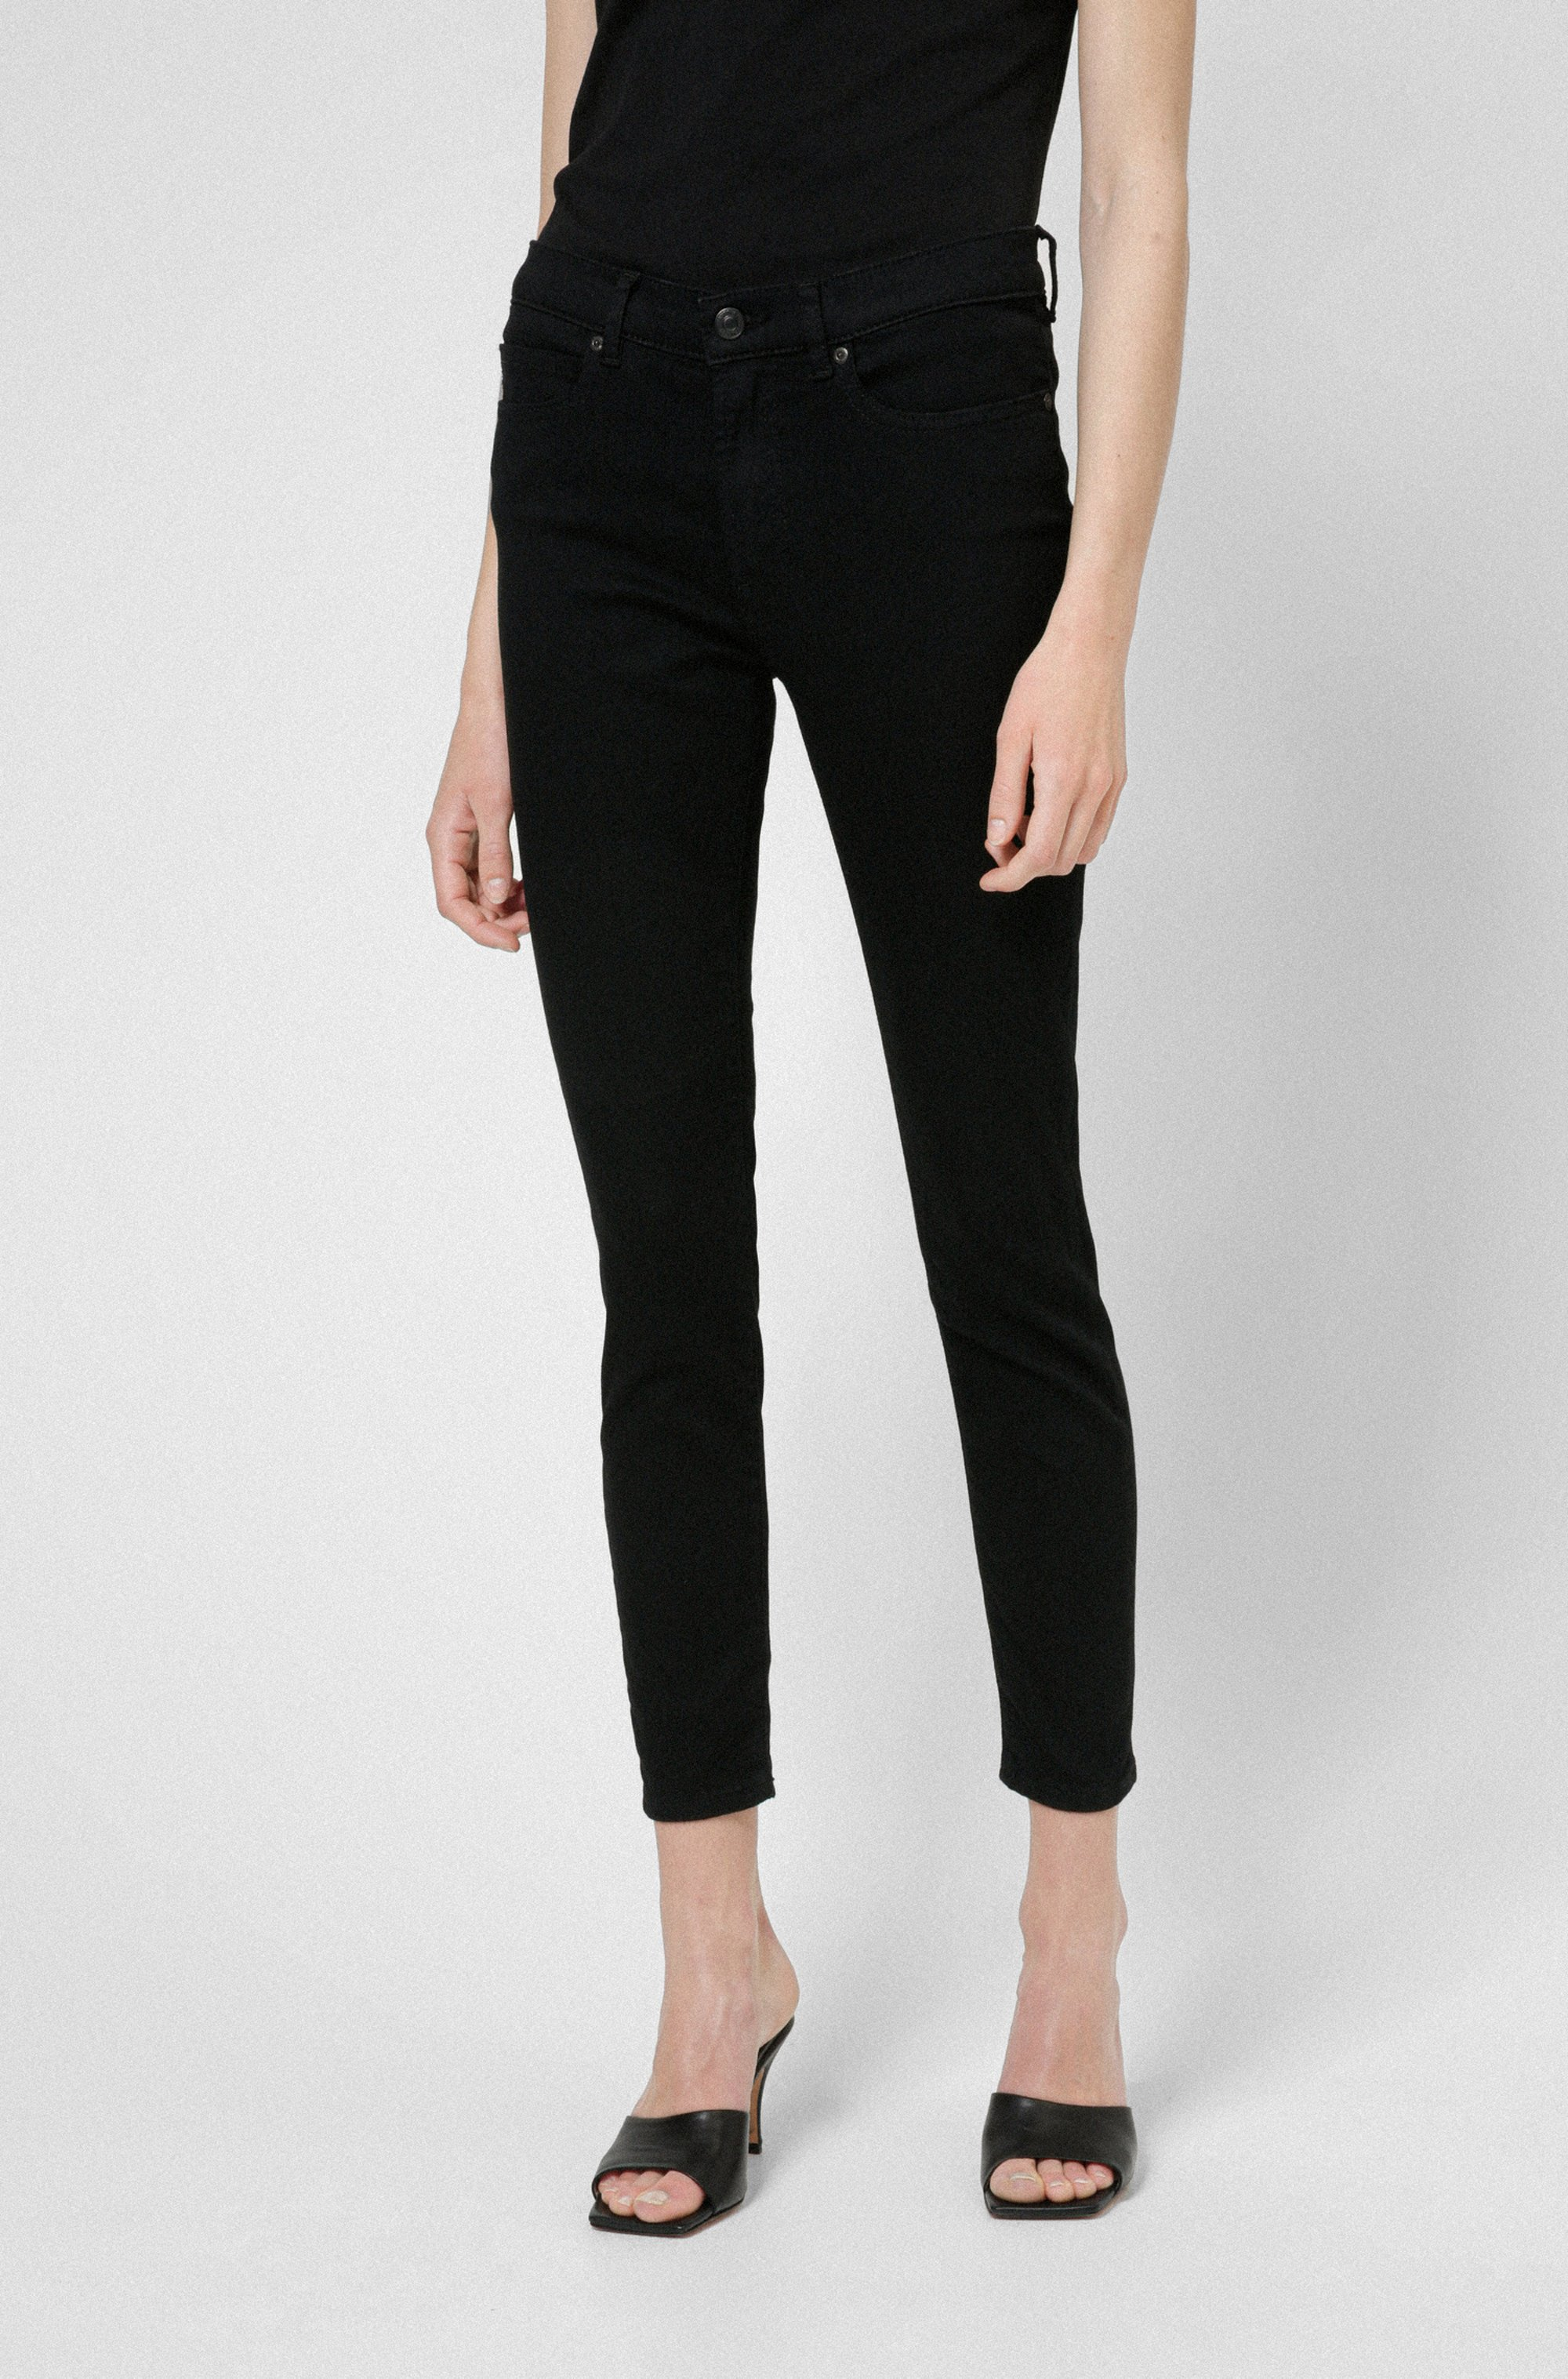 CHARLIE super-skinny-fit jeans in black magic-flex denim